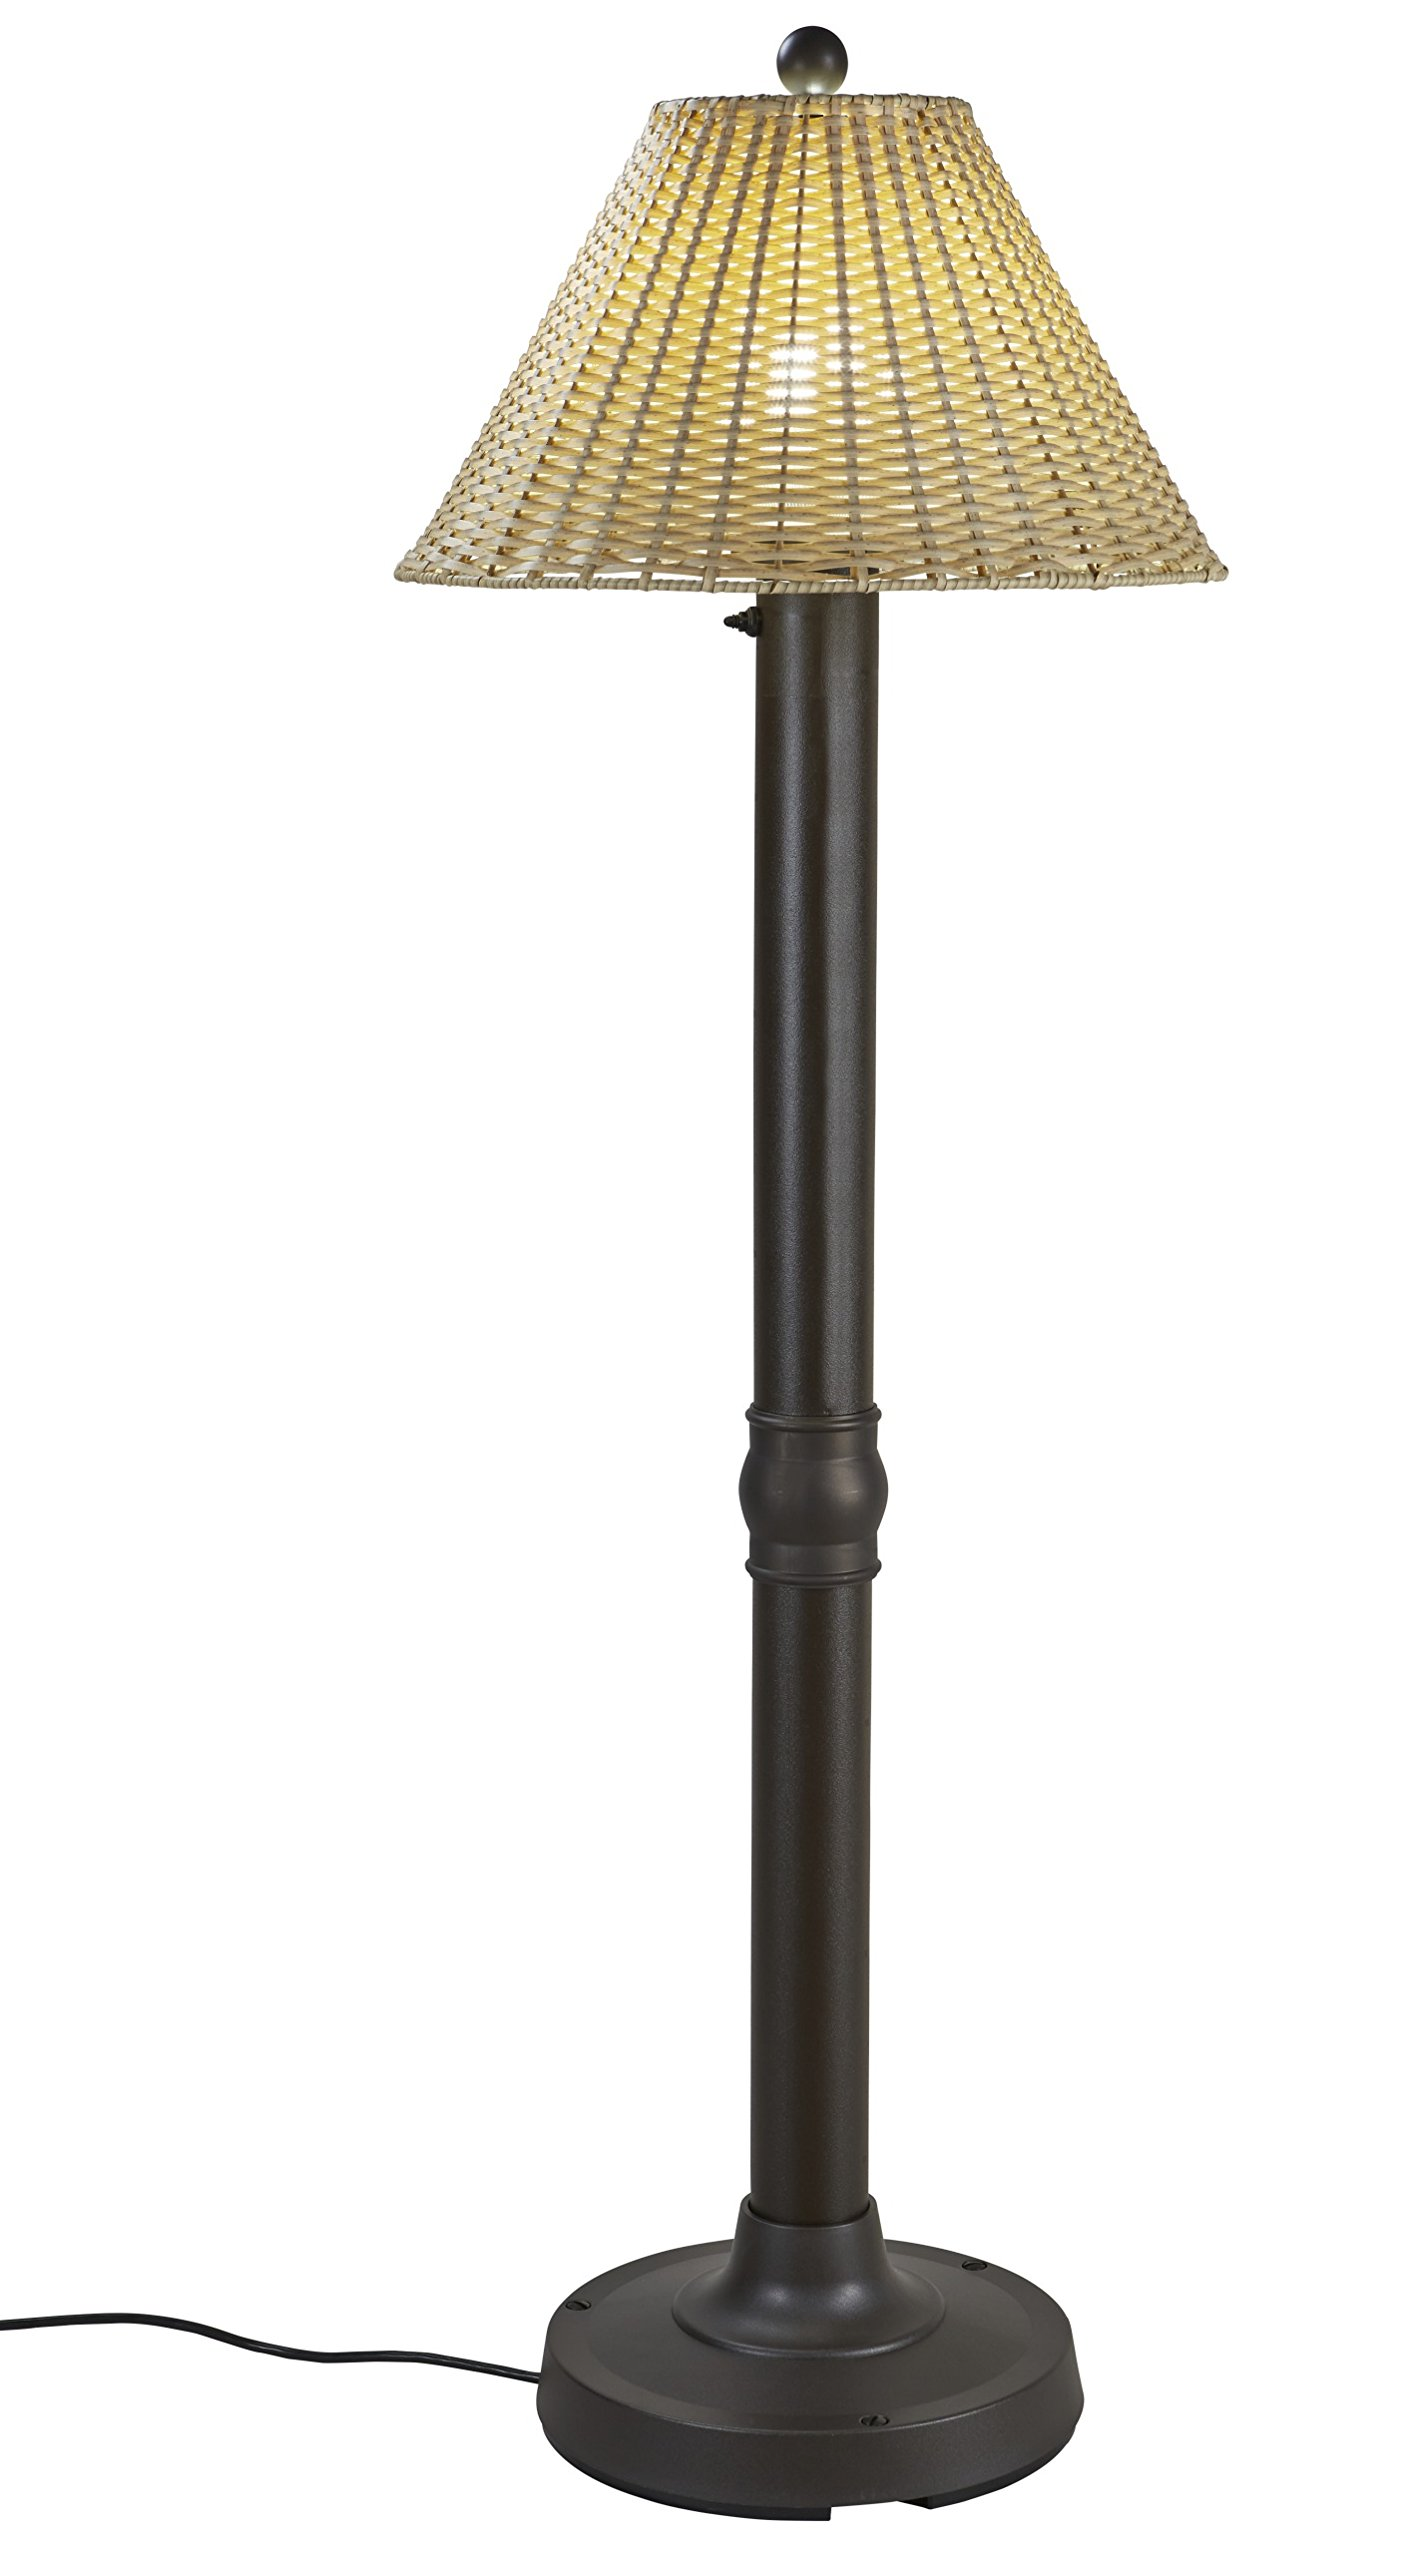 Patio Living Concepts 19207 Tahiti Outdoor Floor Lamp with 3'' Tubular Body, 60''